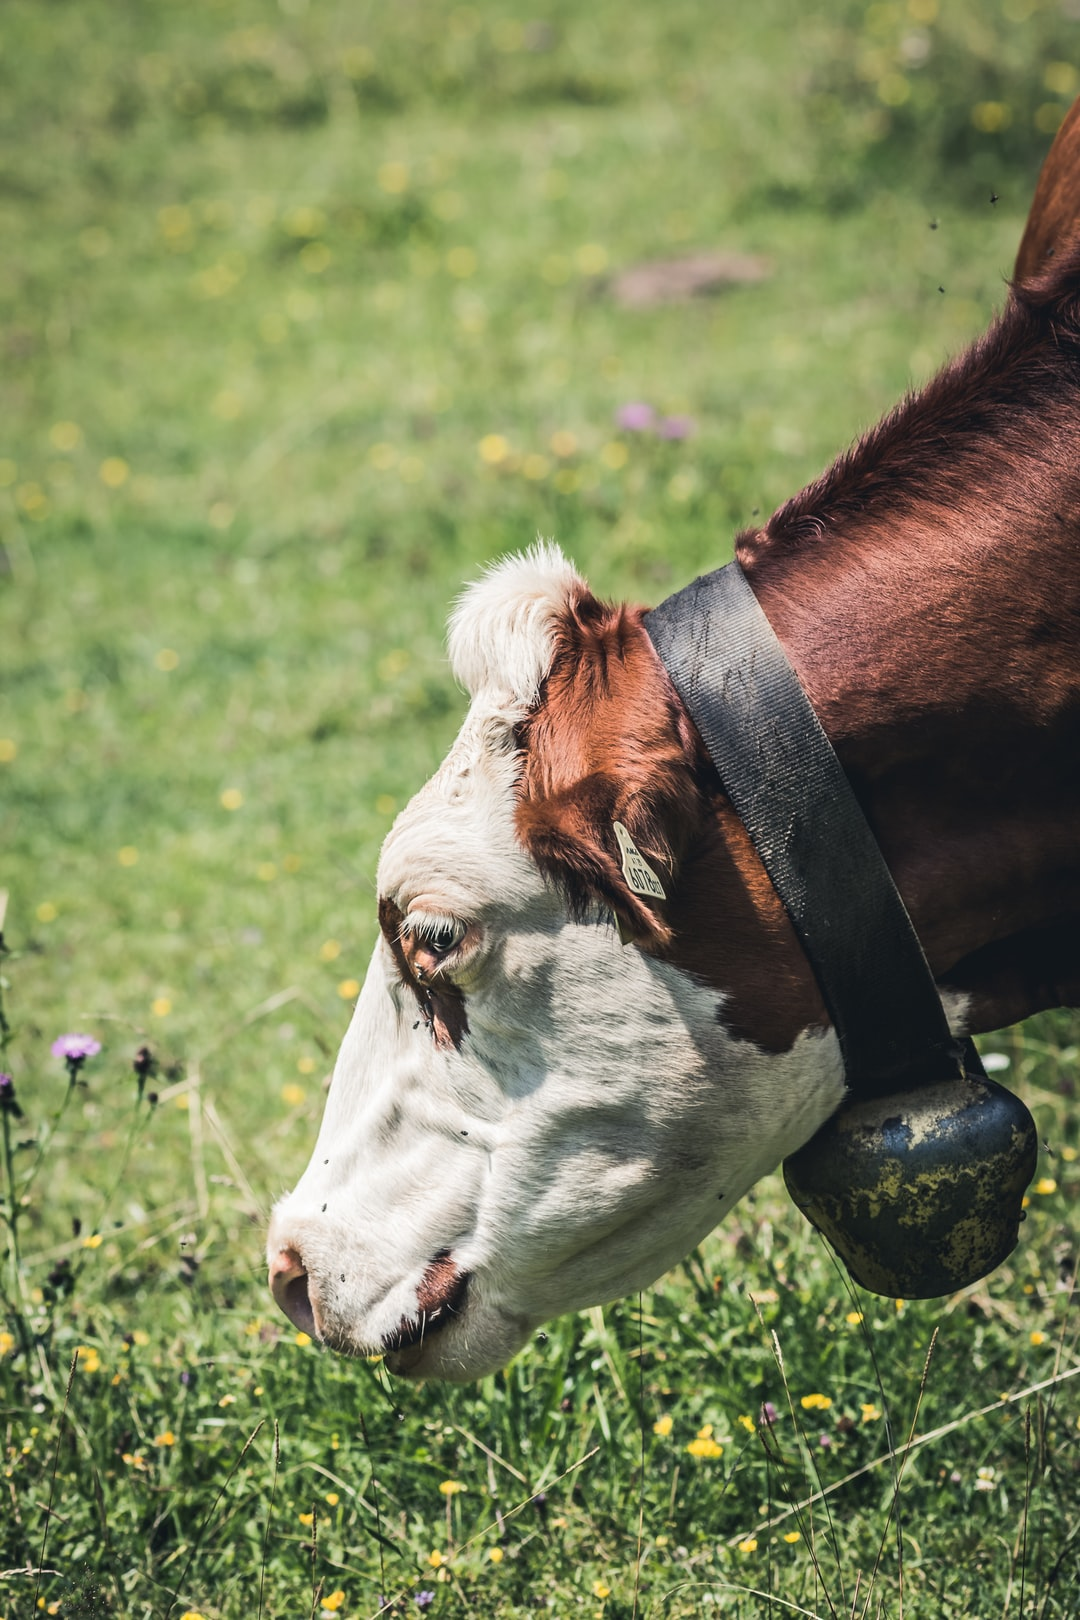 20 Best Free Cow Pictures On Unsplash